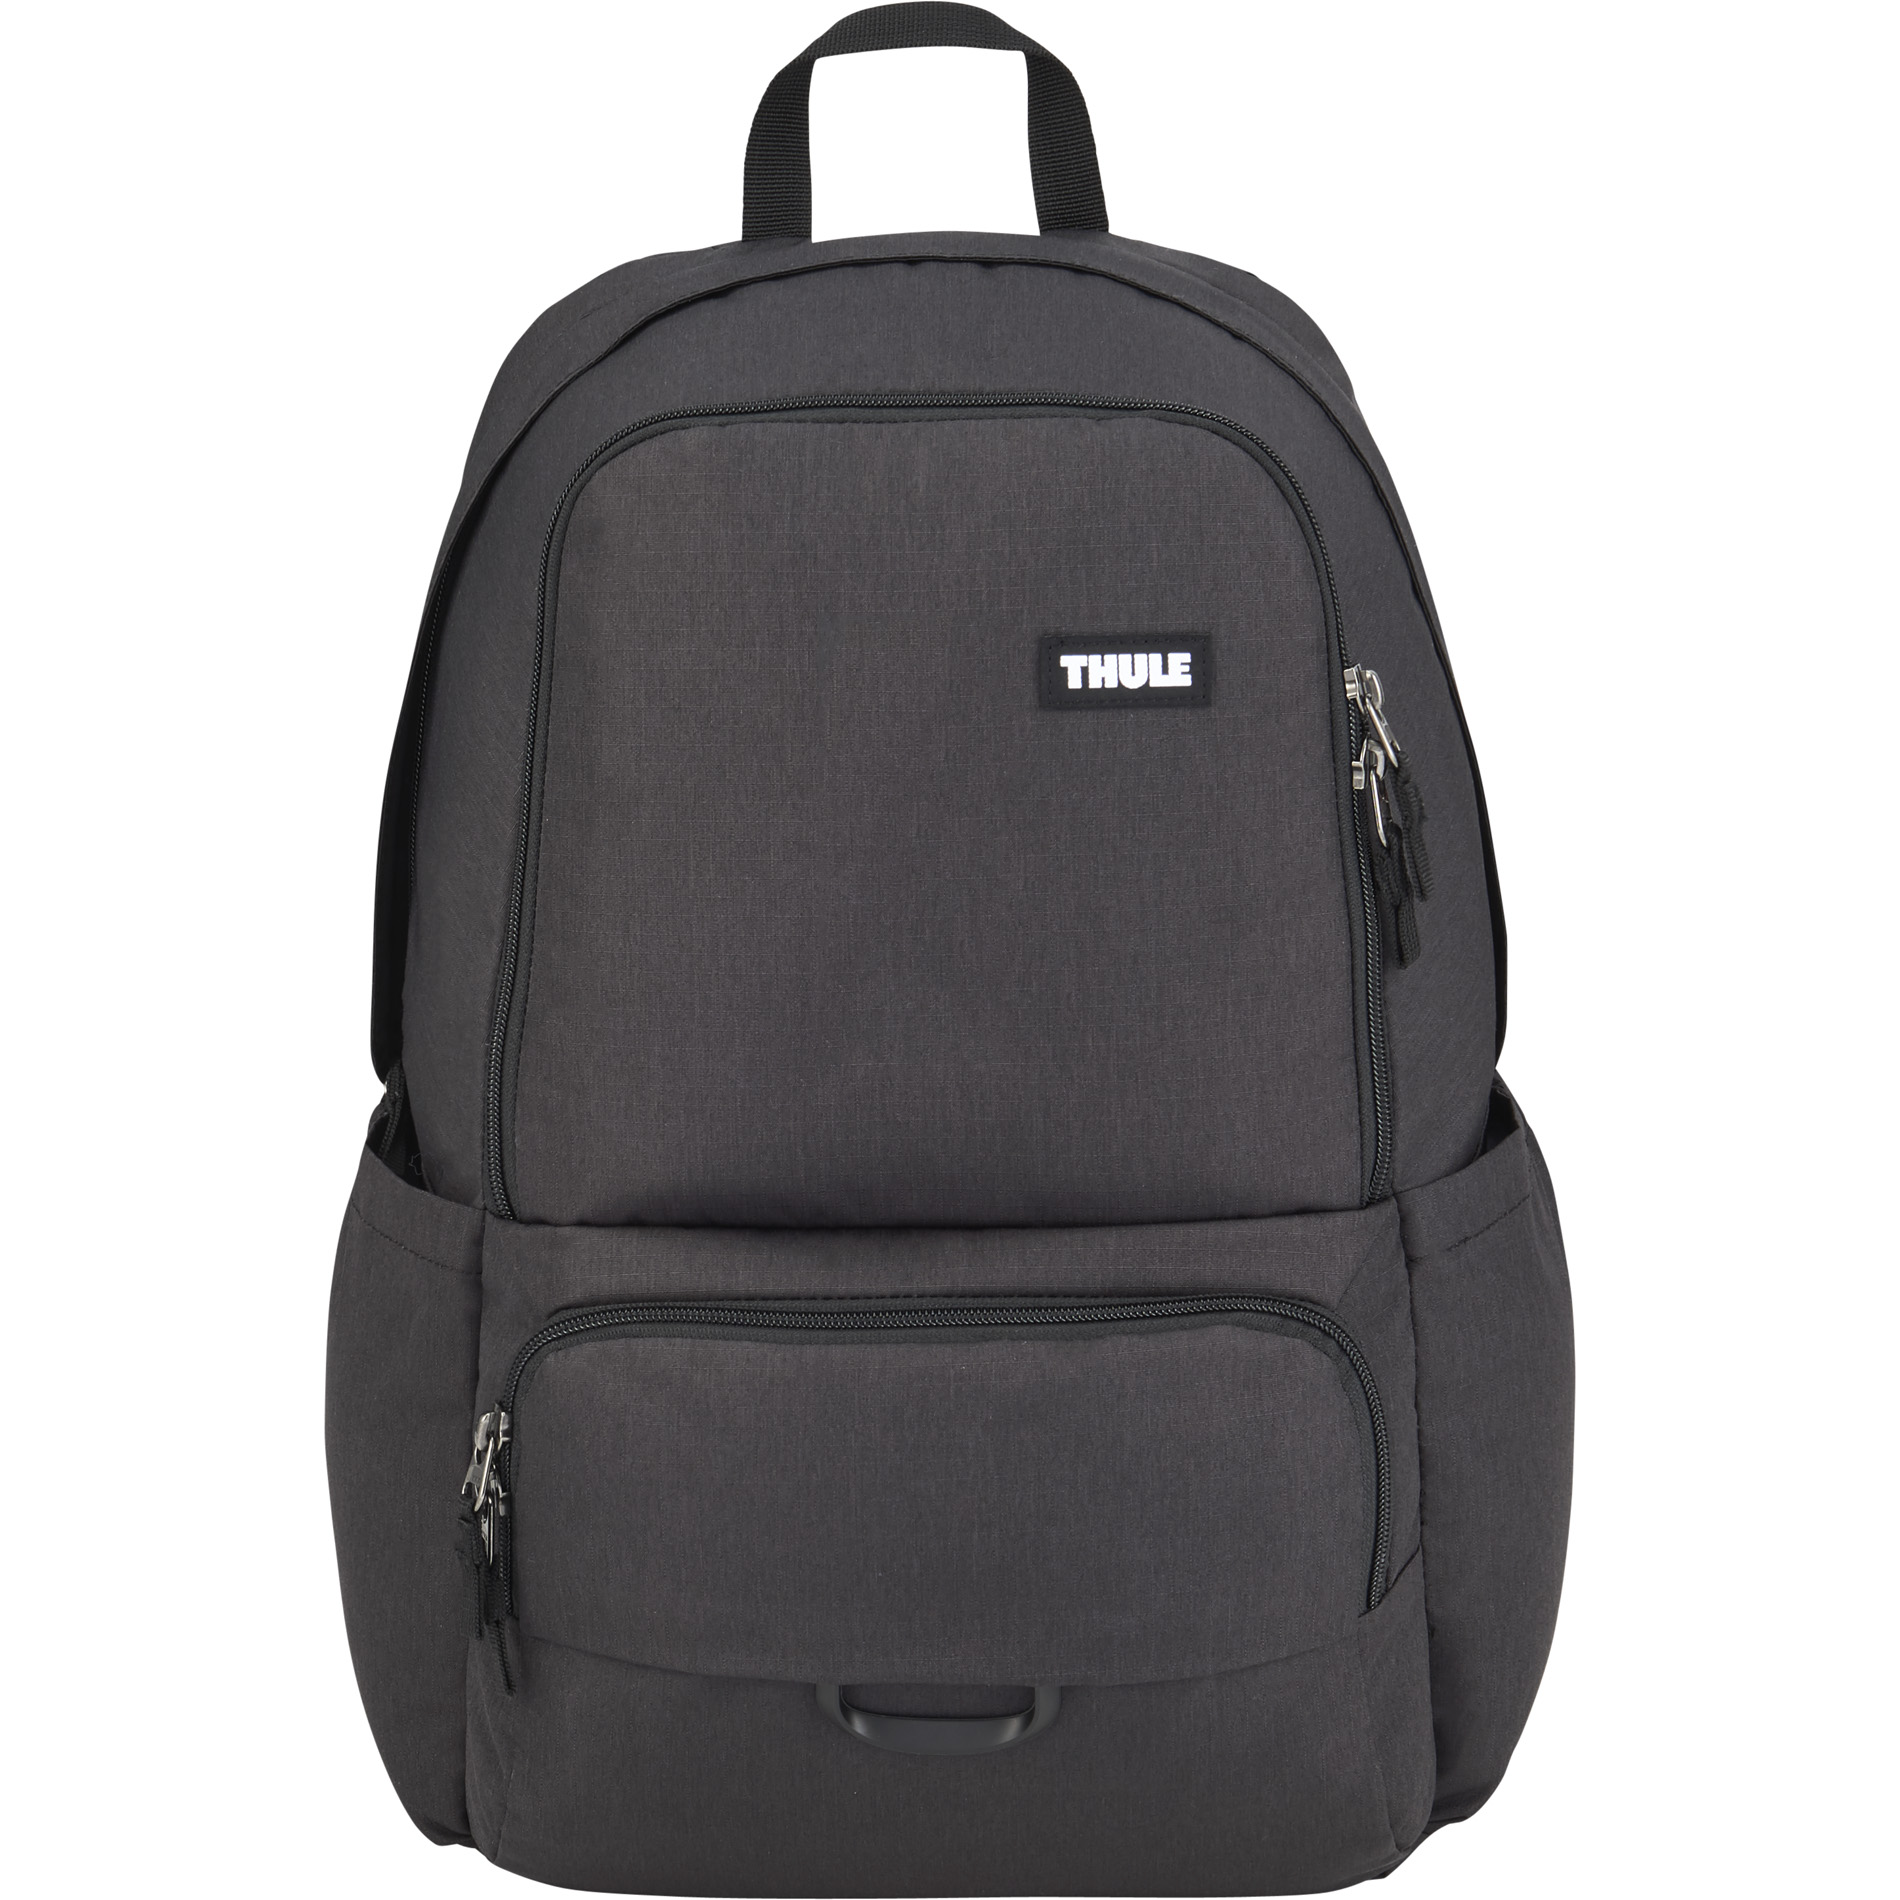 "Thule 9020-38 - Aptitude 15"" Computer Backpack"